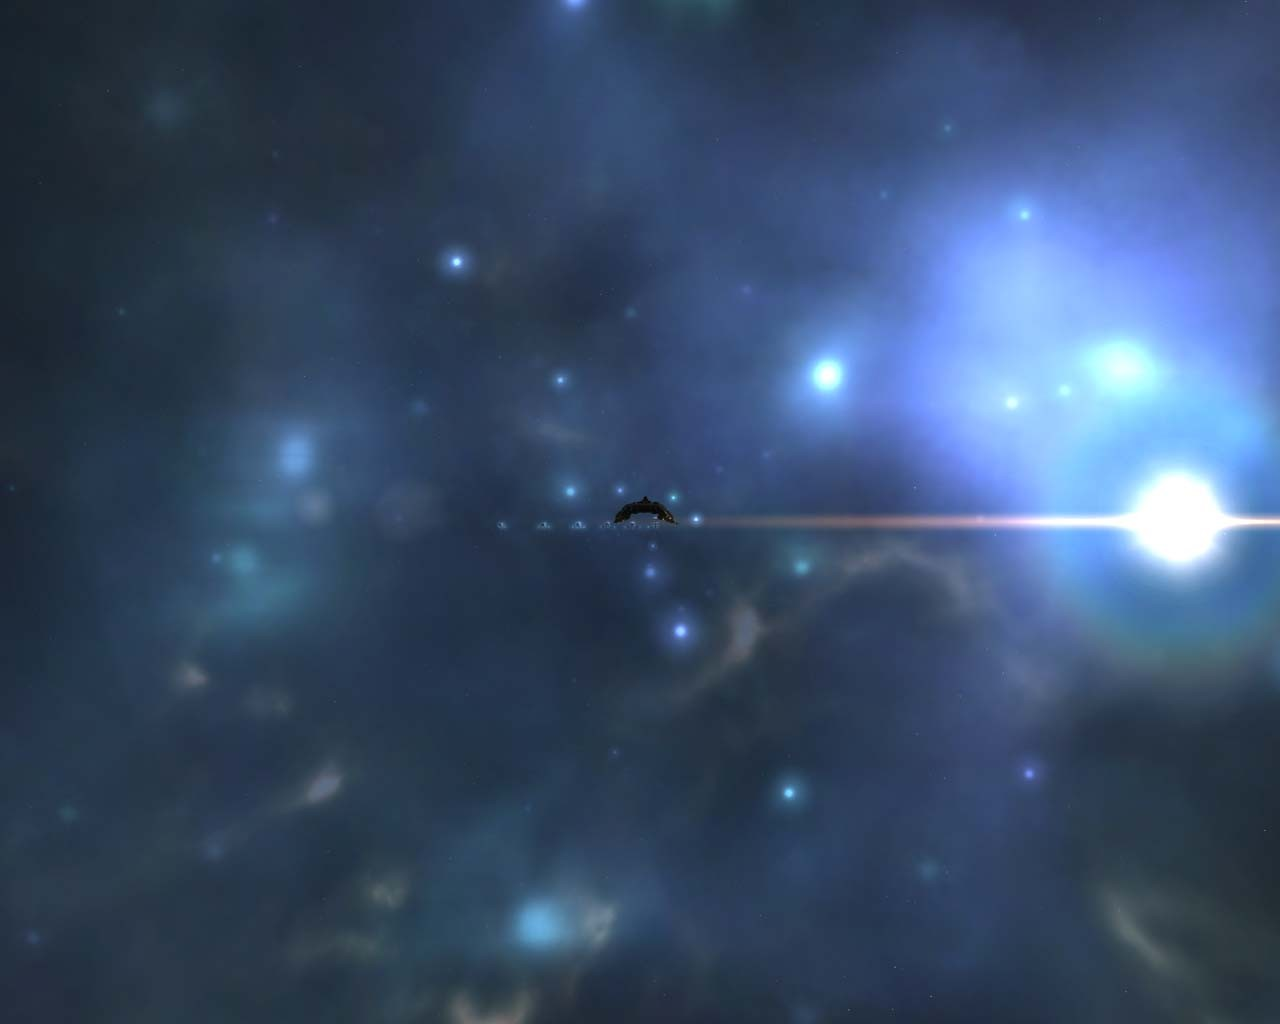 EVE Online - Thought this looked cool